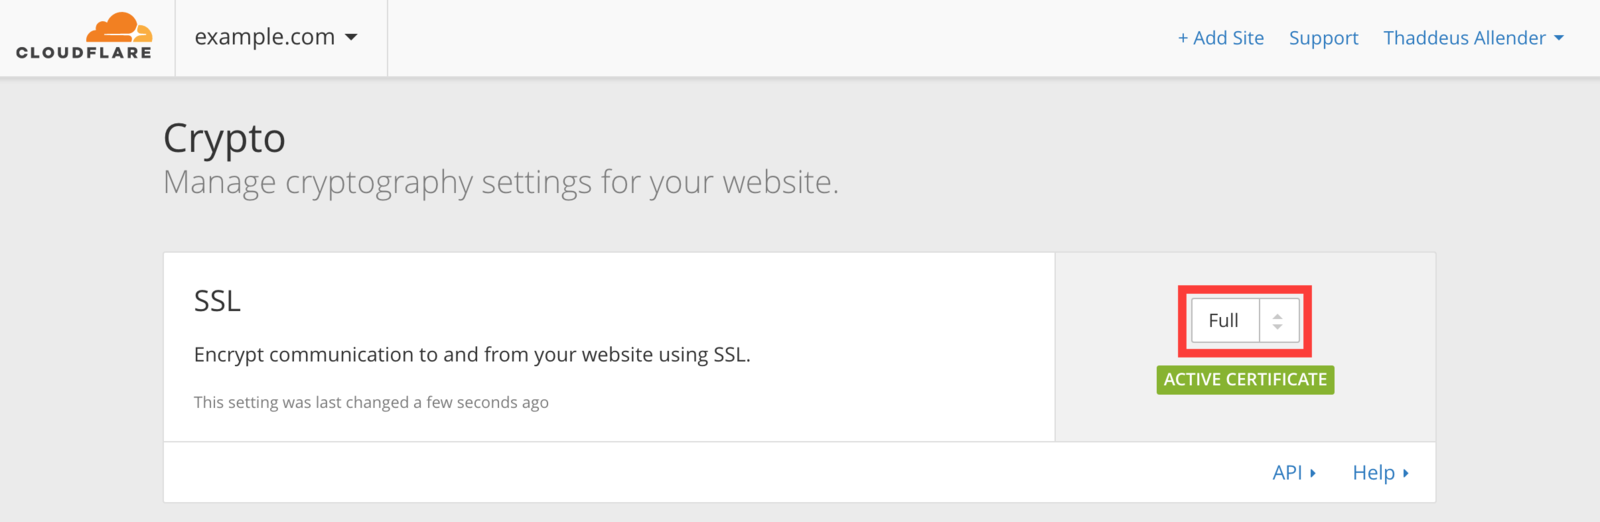 Cloudflare SSL